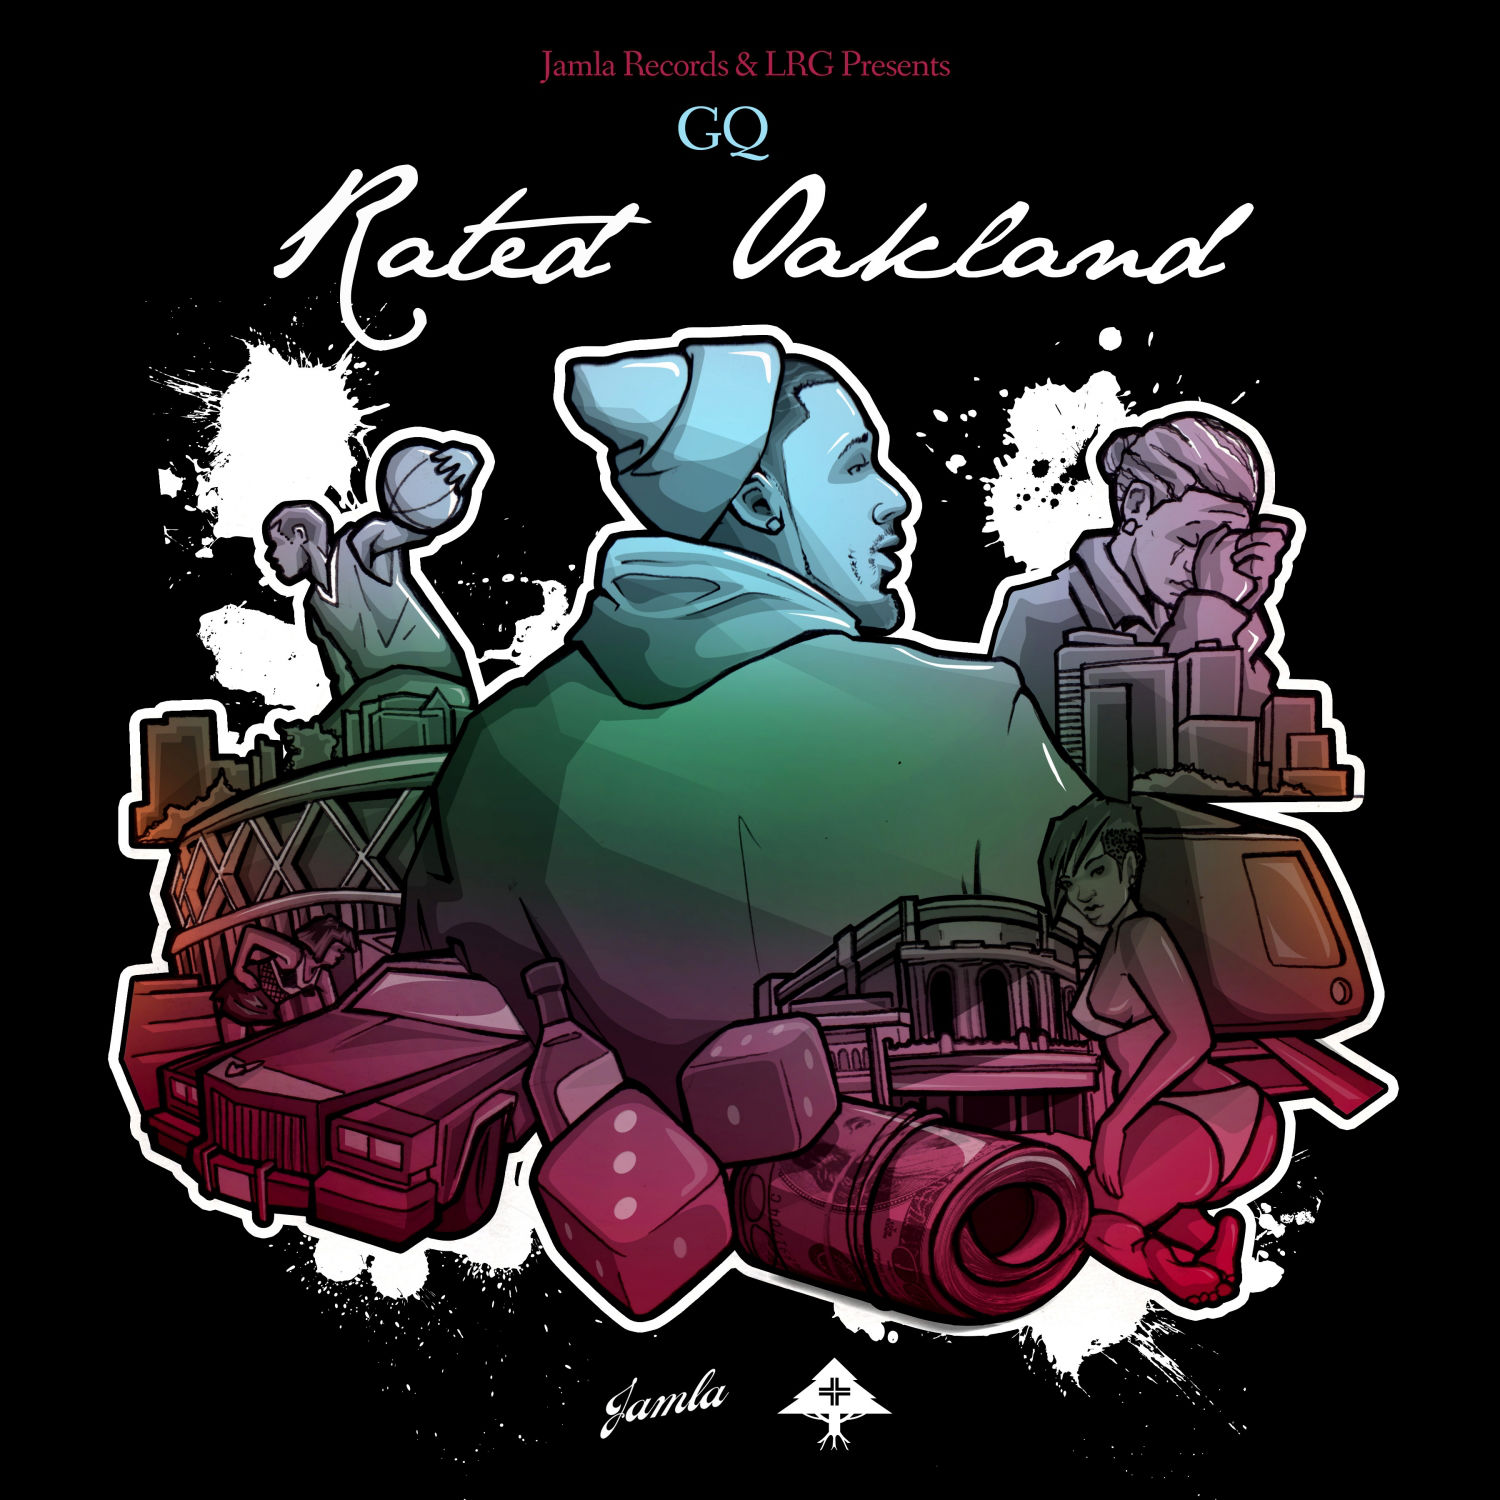 Rated_oakland